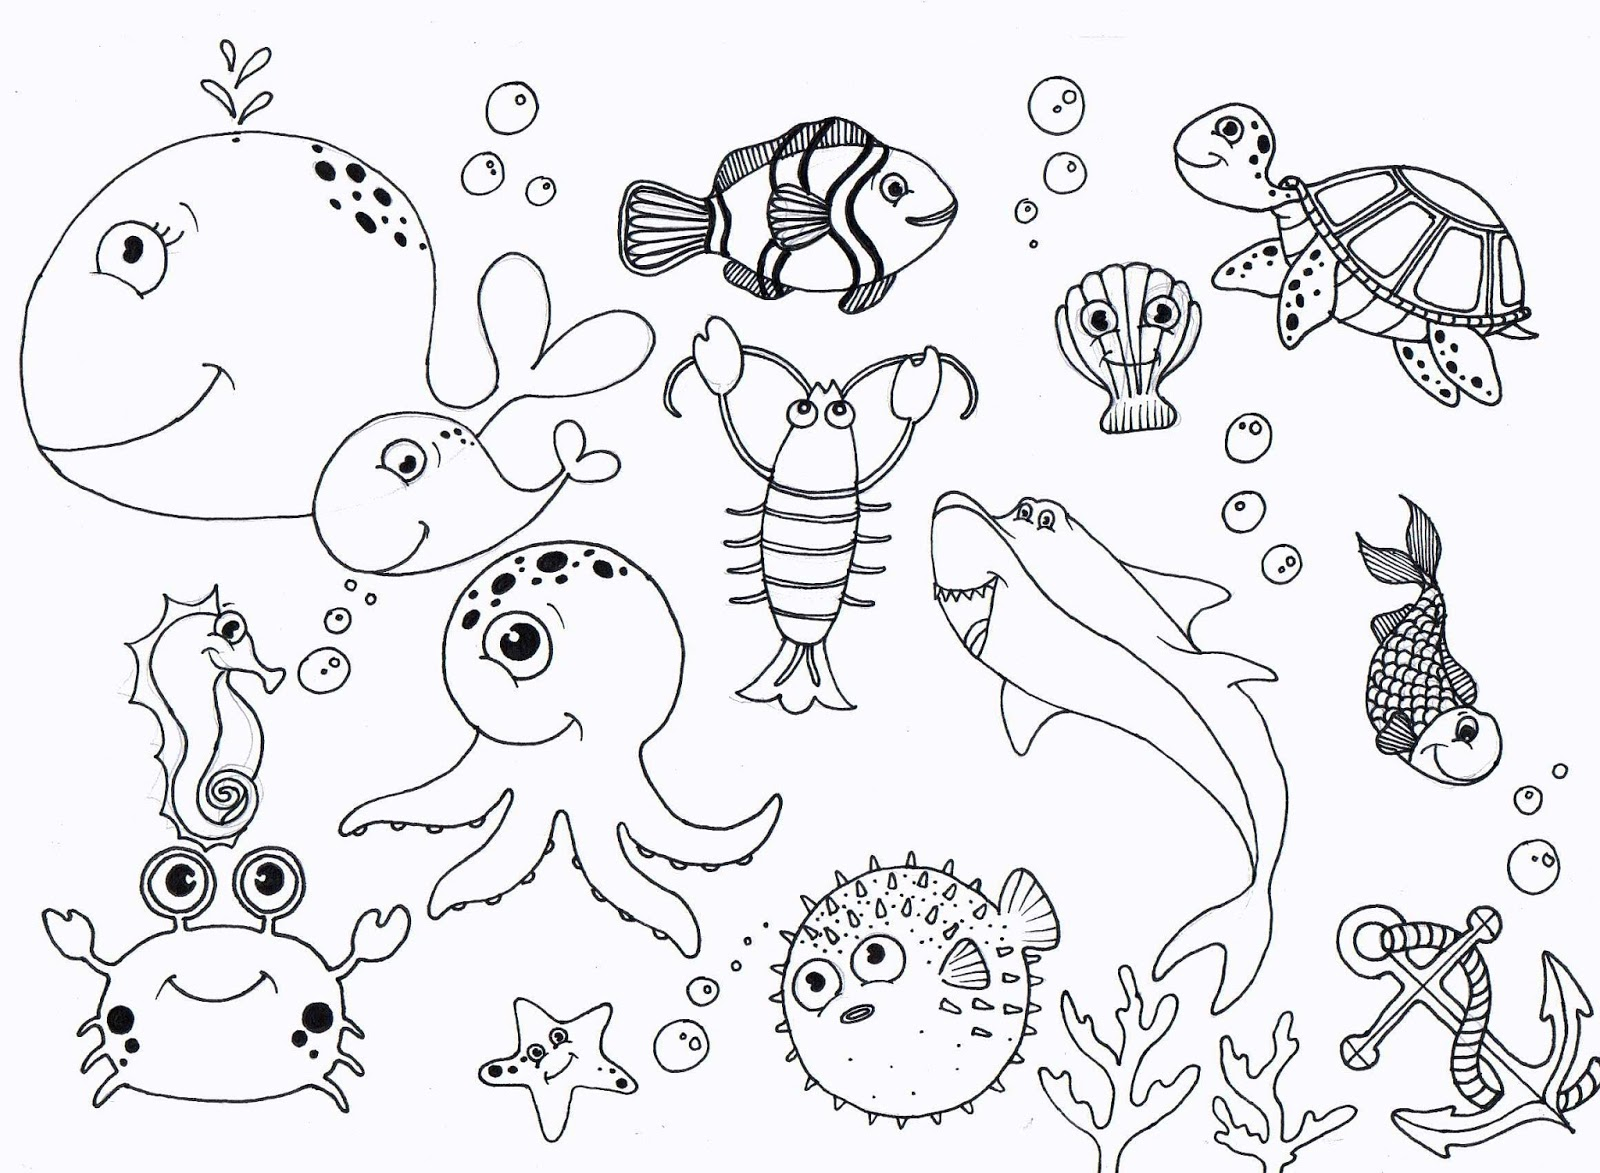 Wall Murals Drawing Ideas Under The Sea